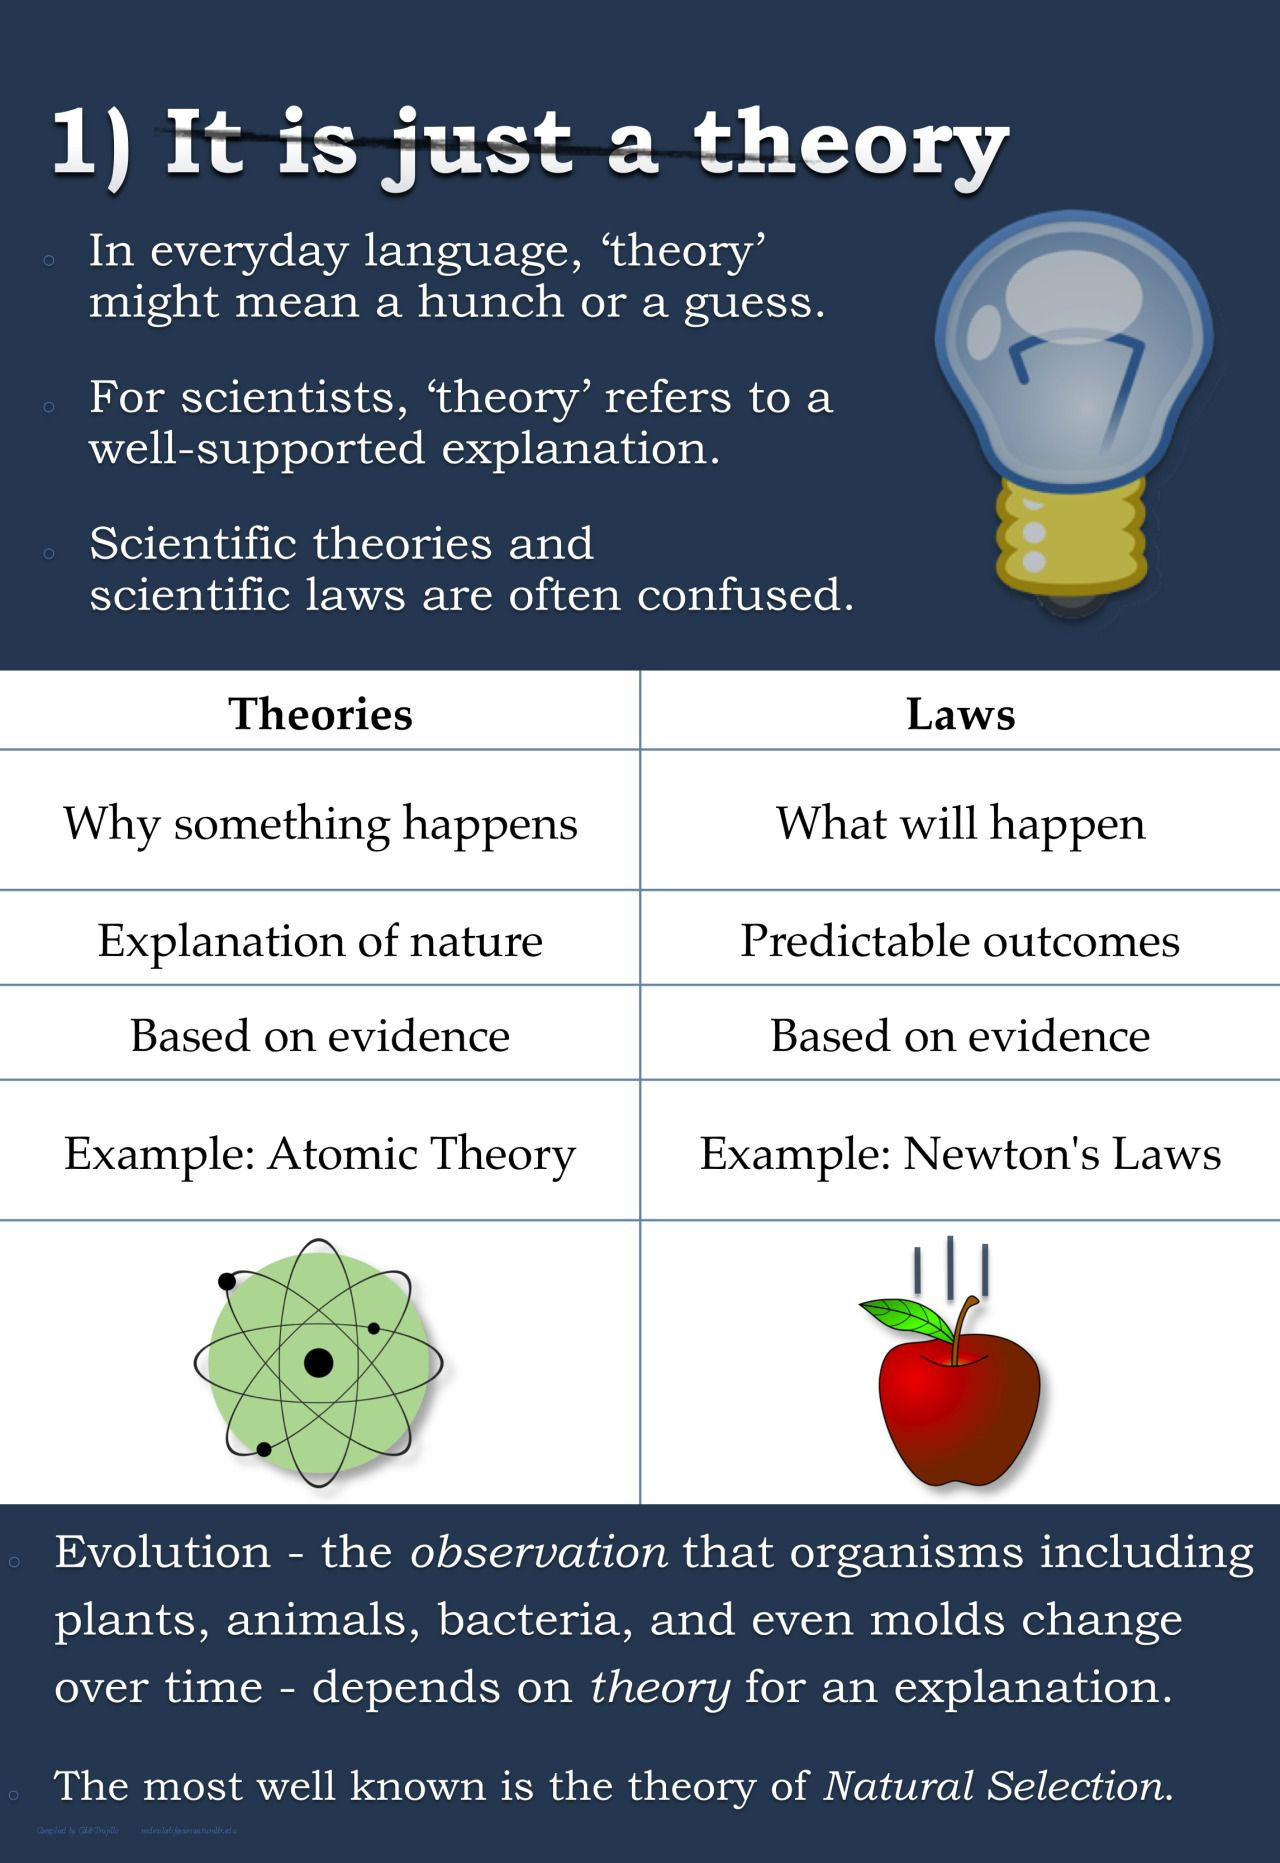 Top 5 Misconceptions About Evolution A Guide To Demystify The